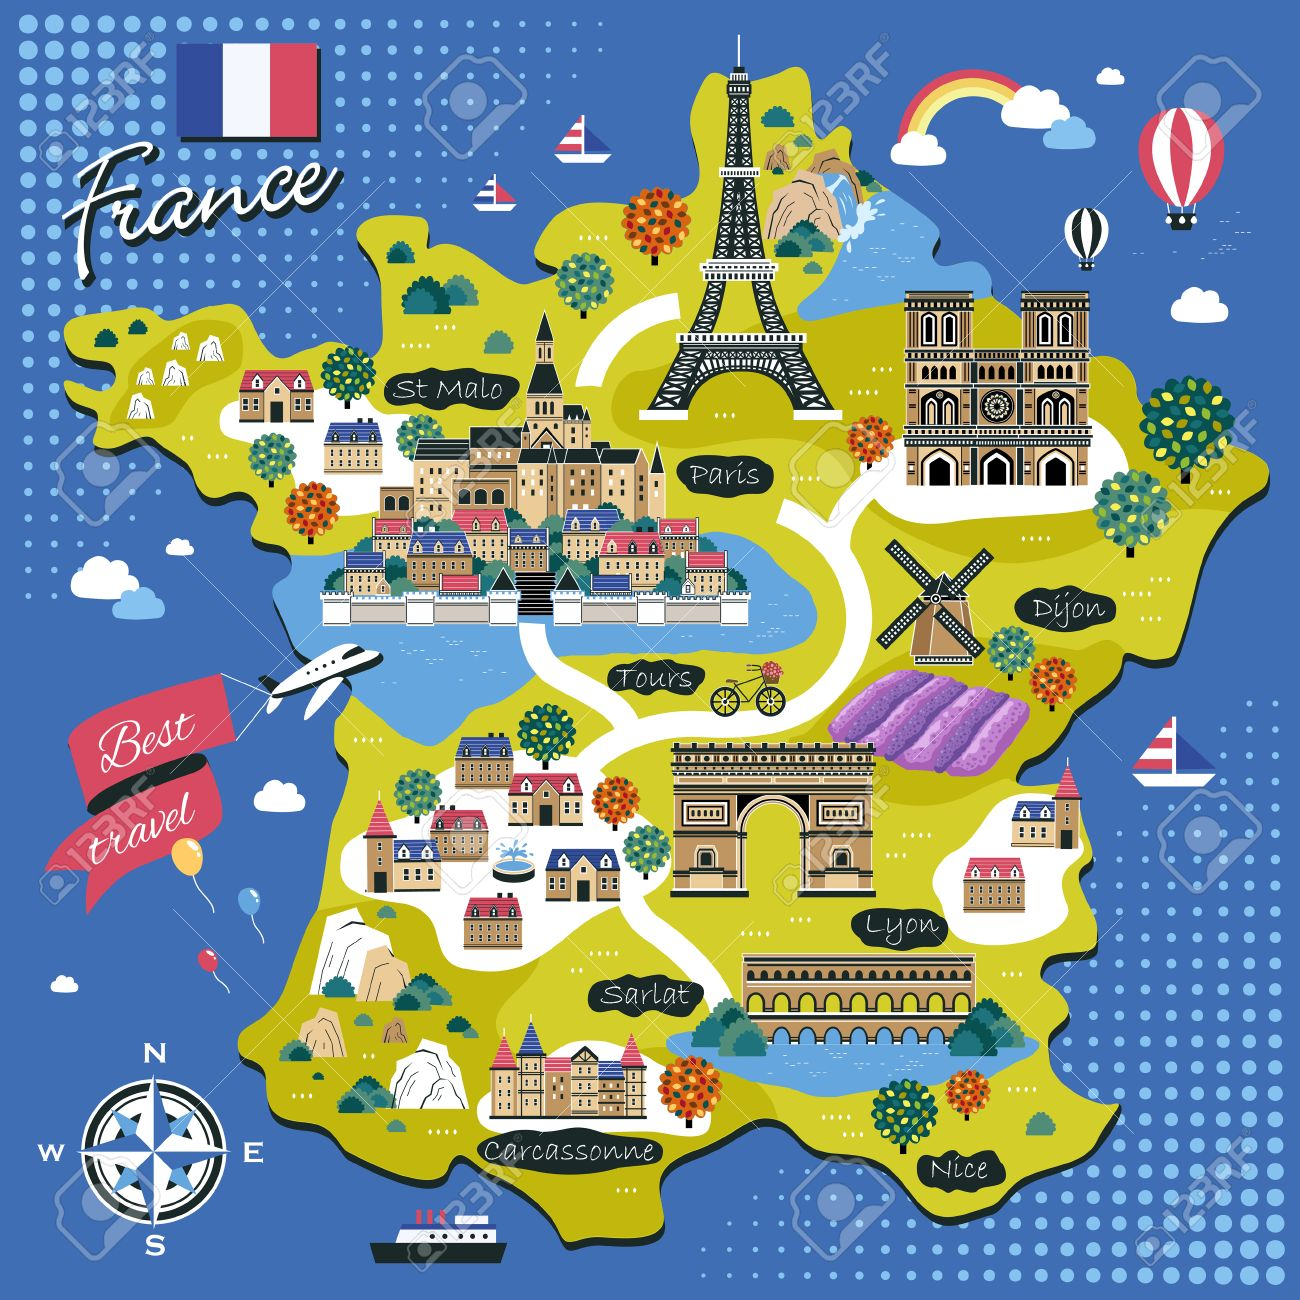 Travel Map Of France.Attractive France Travel Map With Attractions In Flat Design Royalty